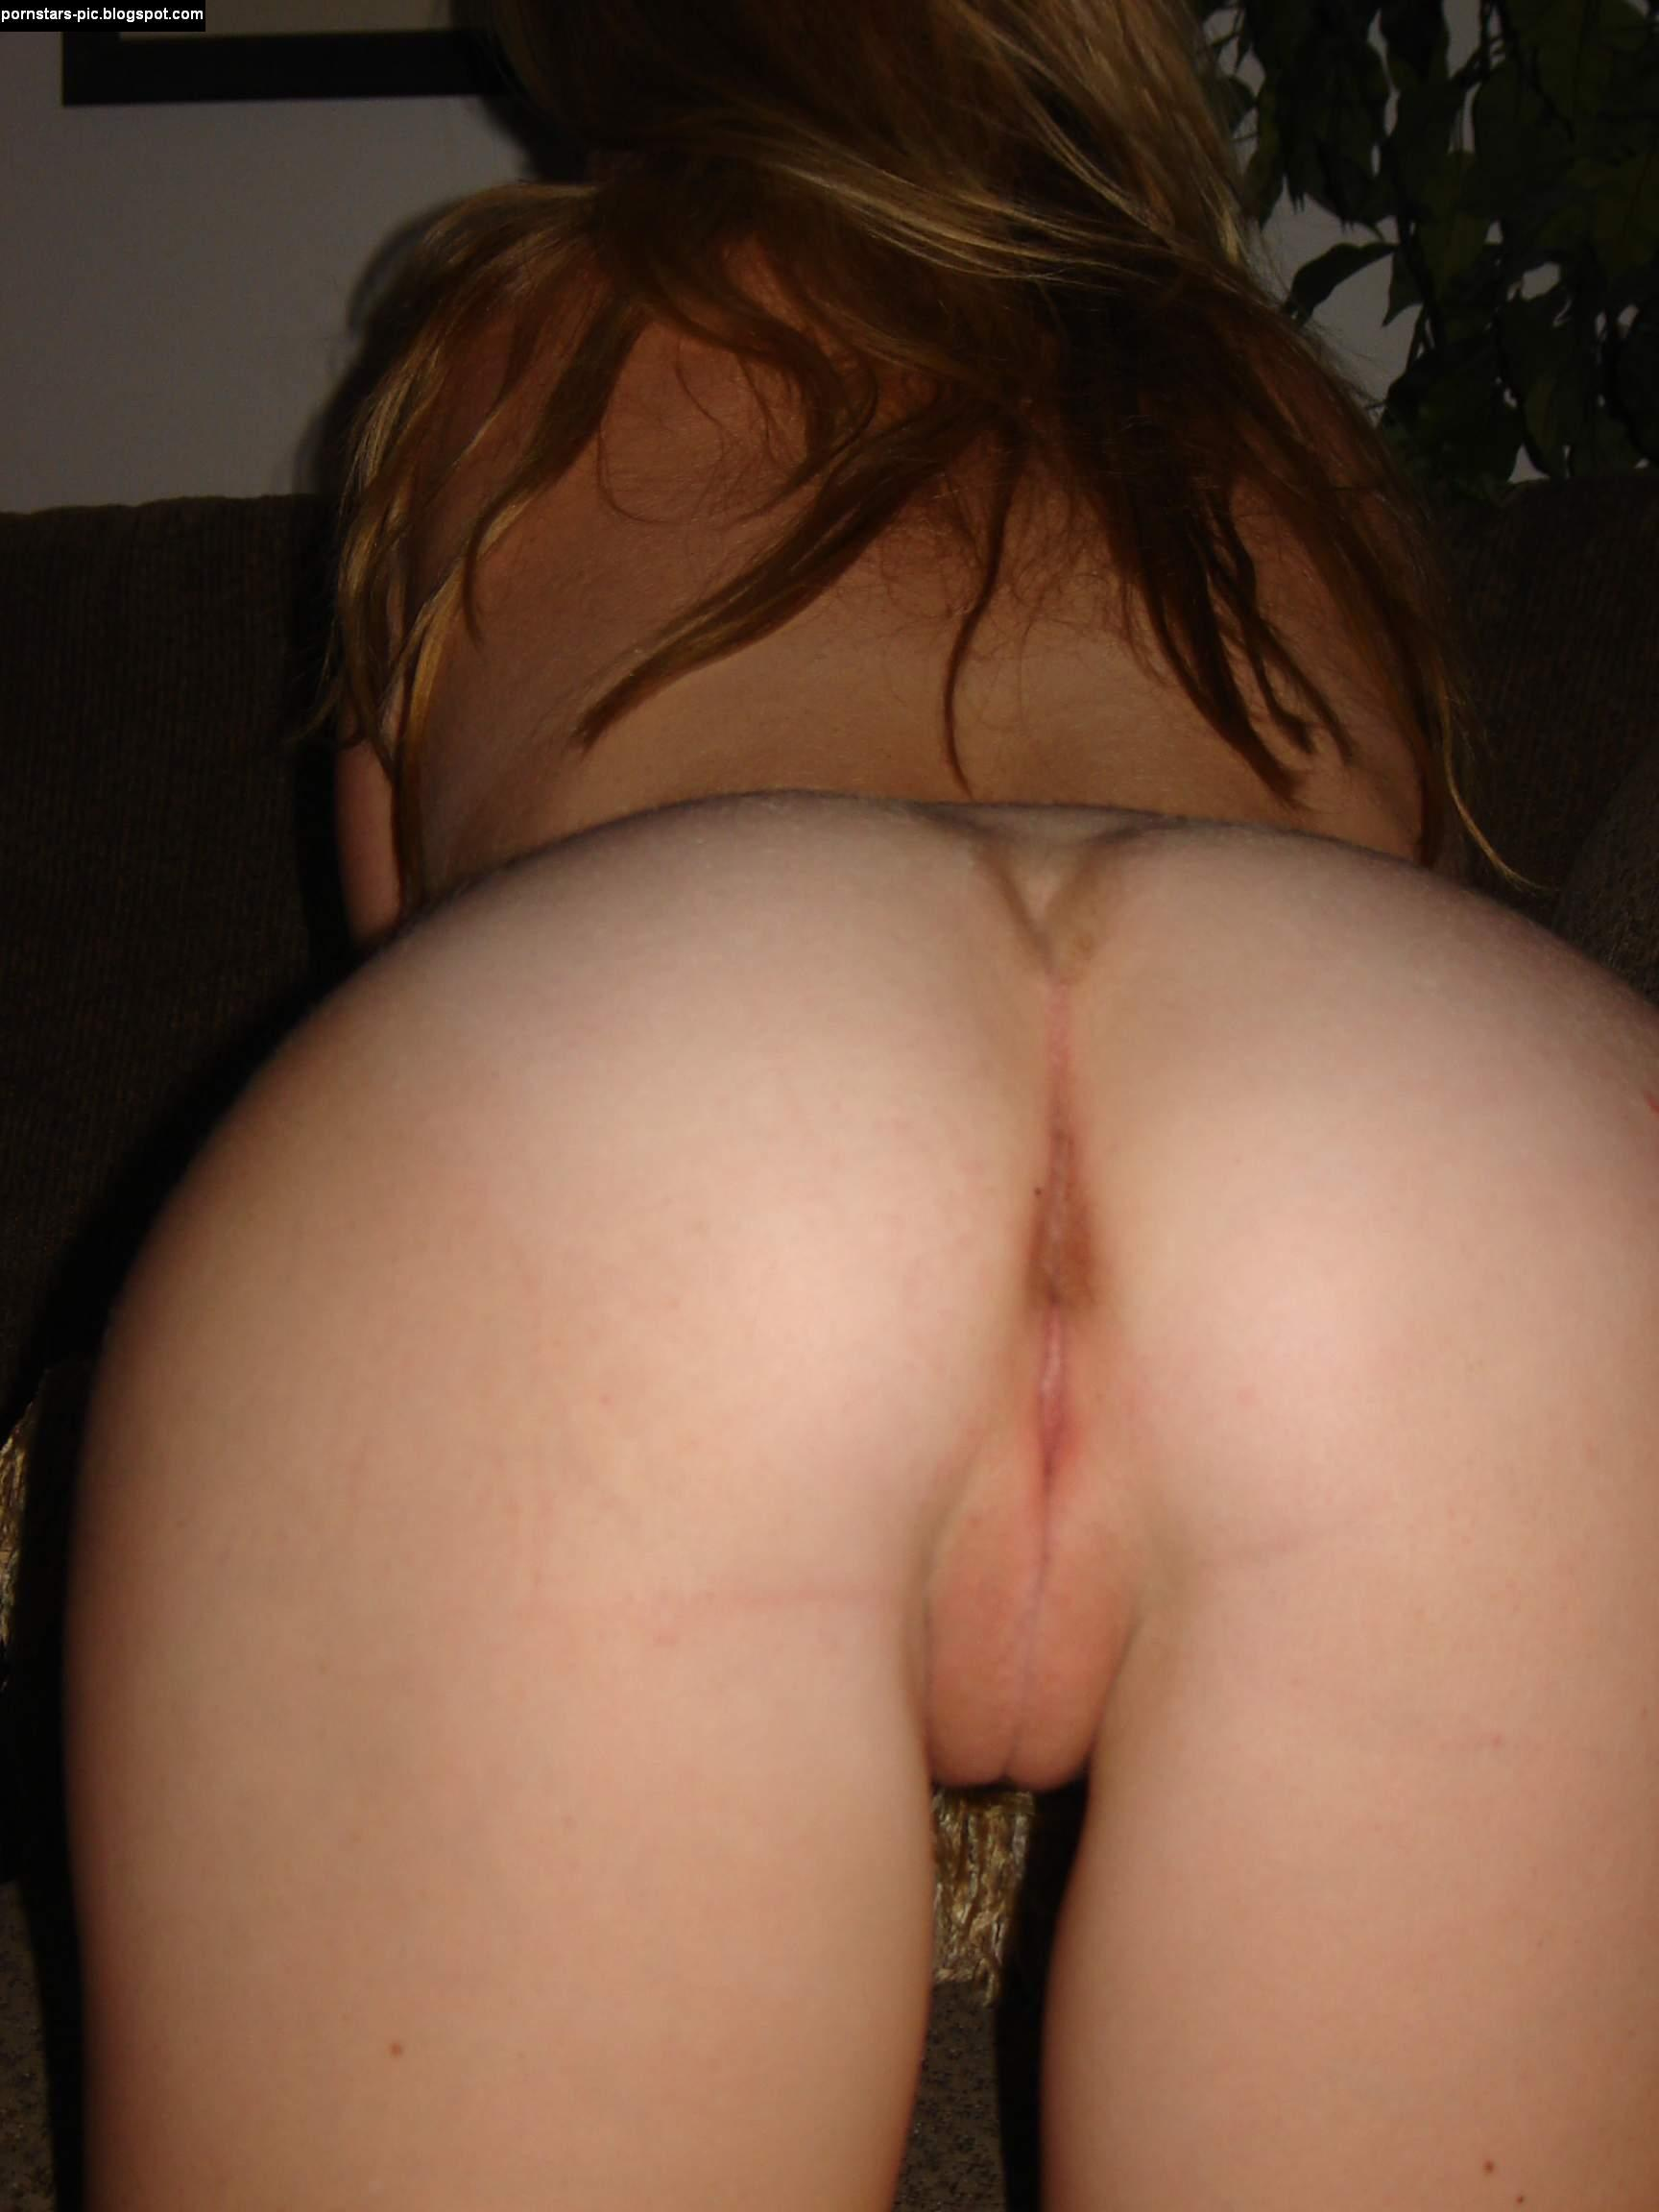 Recommend Amateur girls ass and pussy have won